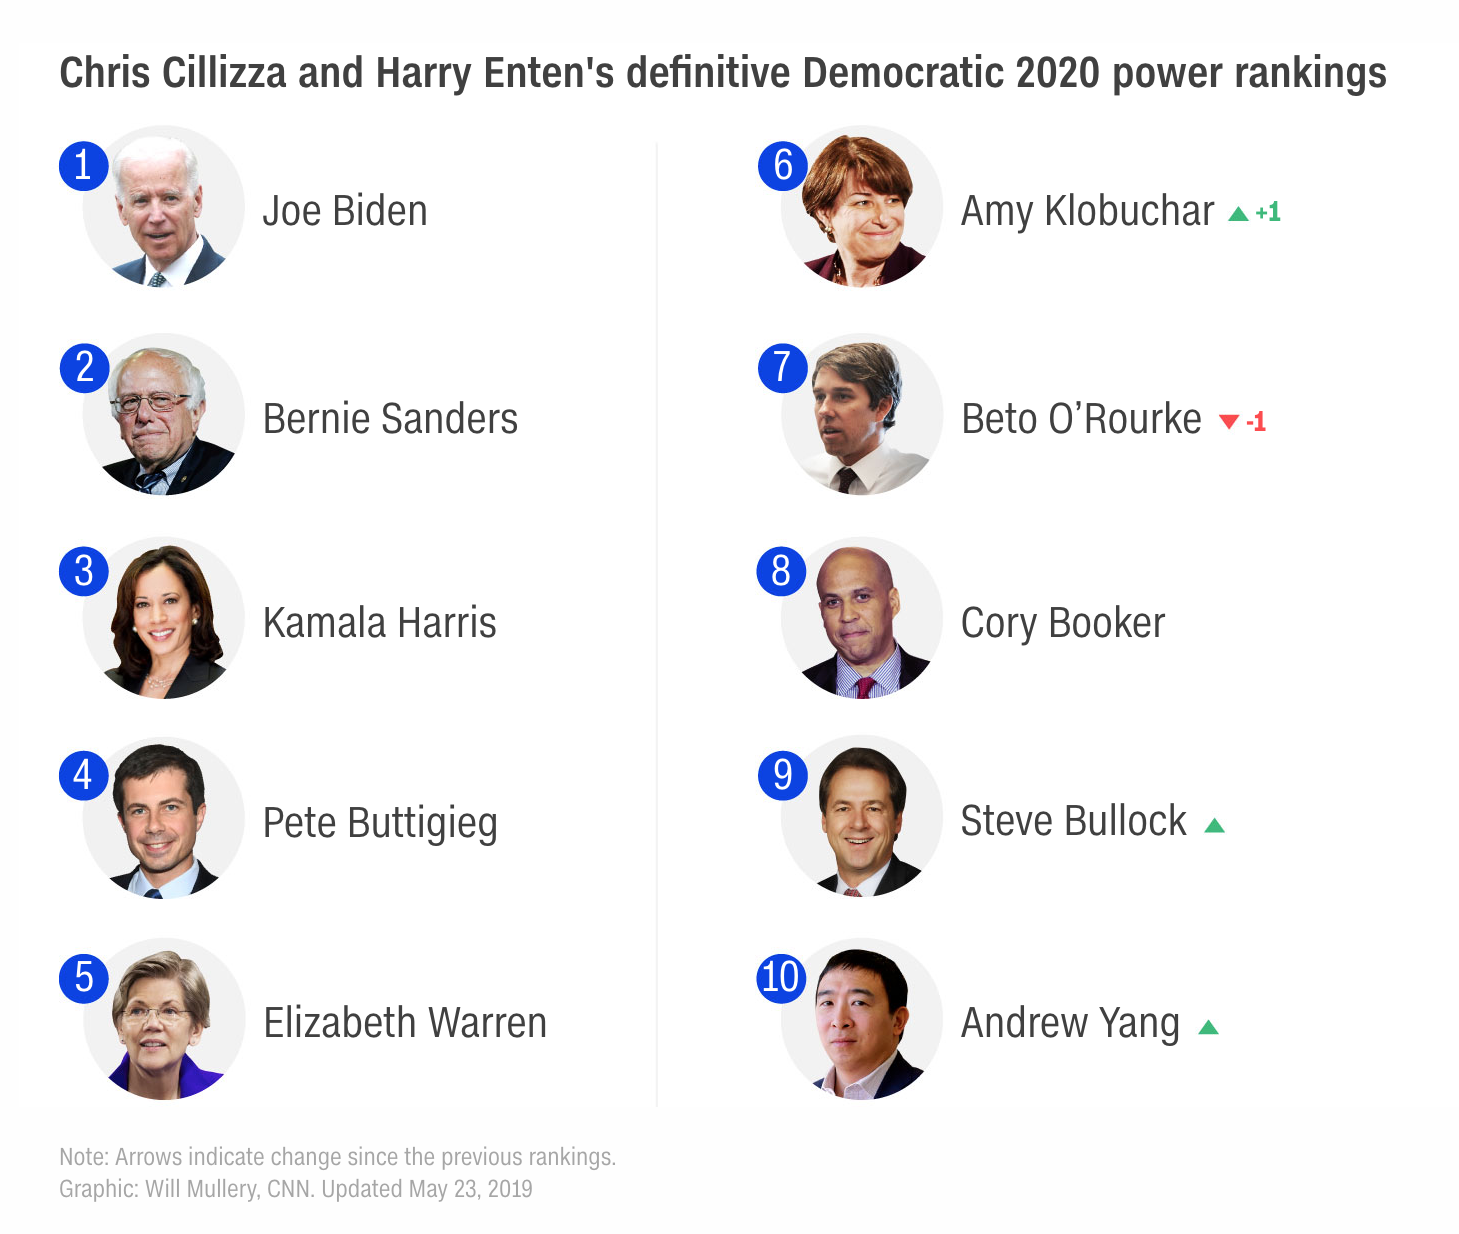 Andrew Yang shows up on the CNN Power Rankings list for the first time